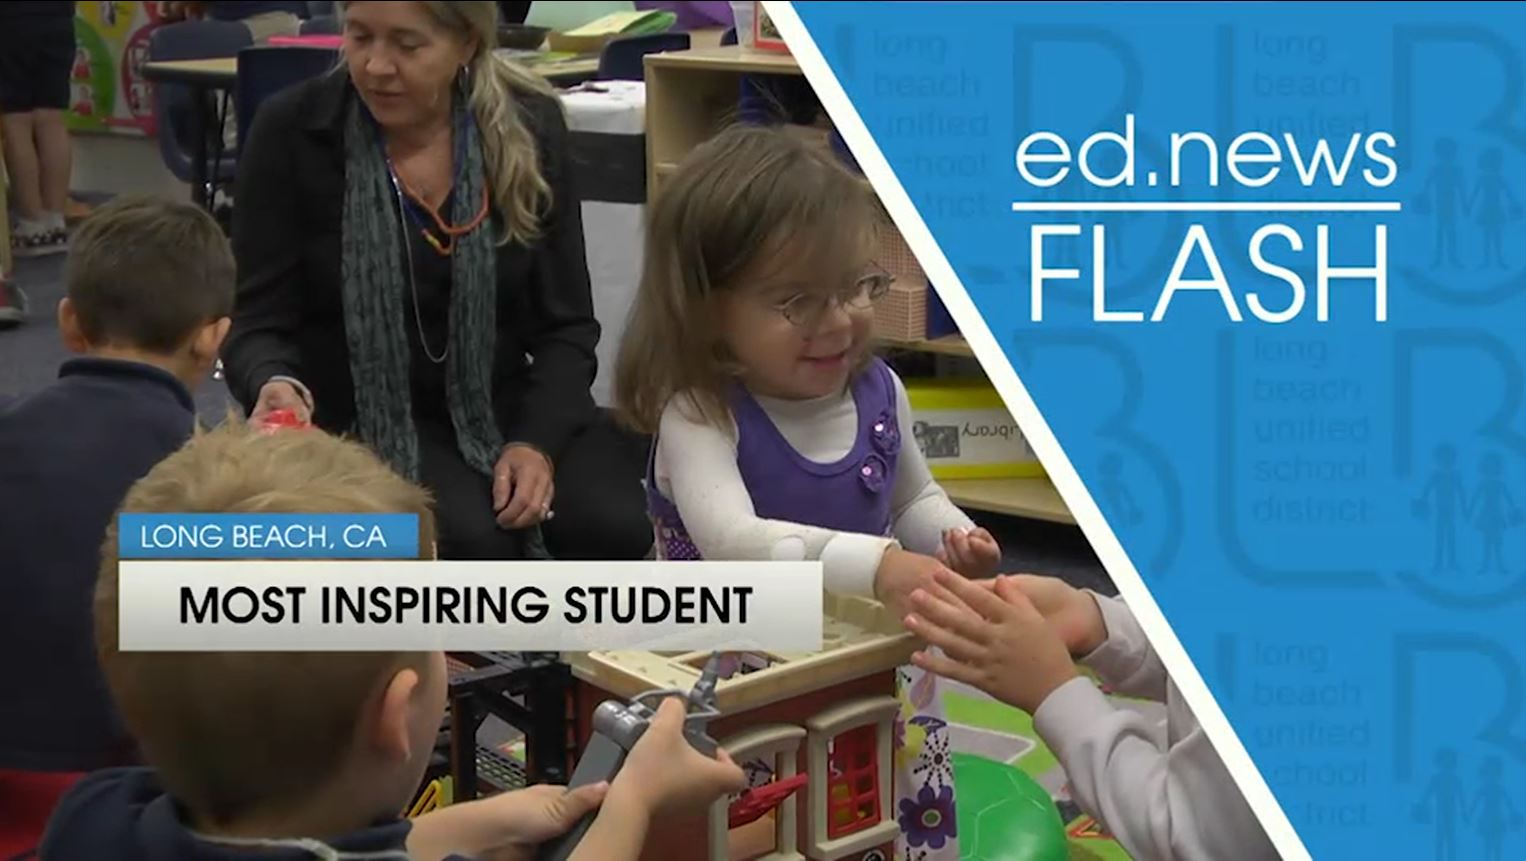 ed.news Flash - Most Inspiring Student: Clara Bodan [HD] - Video